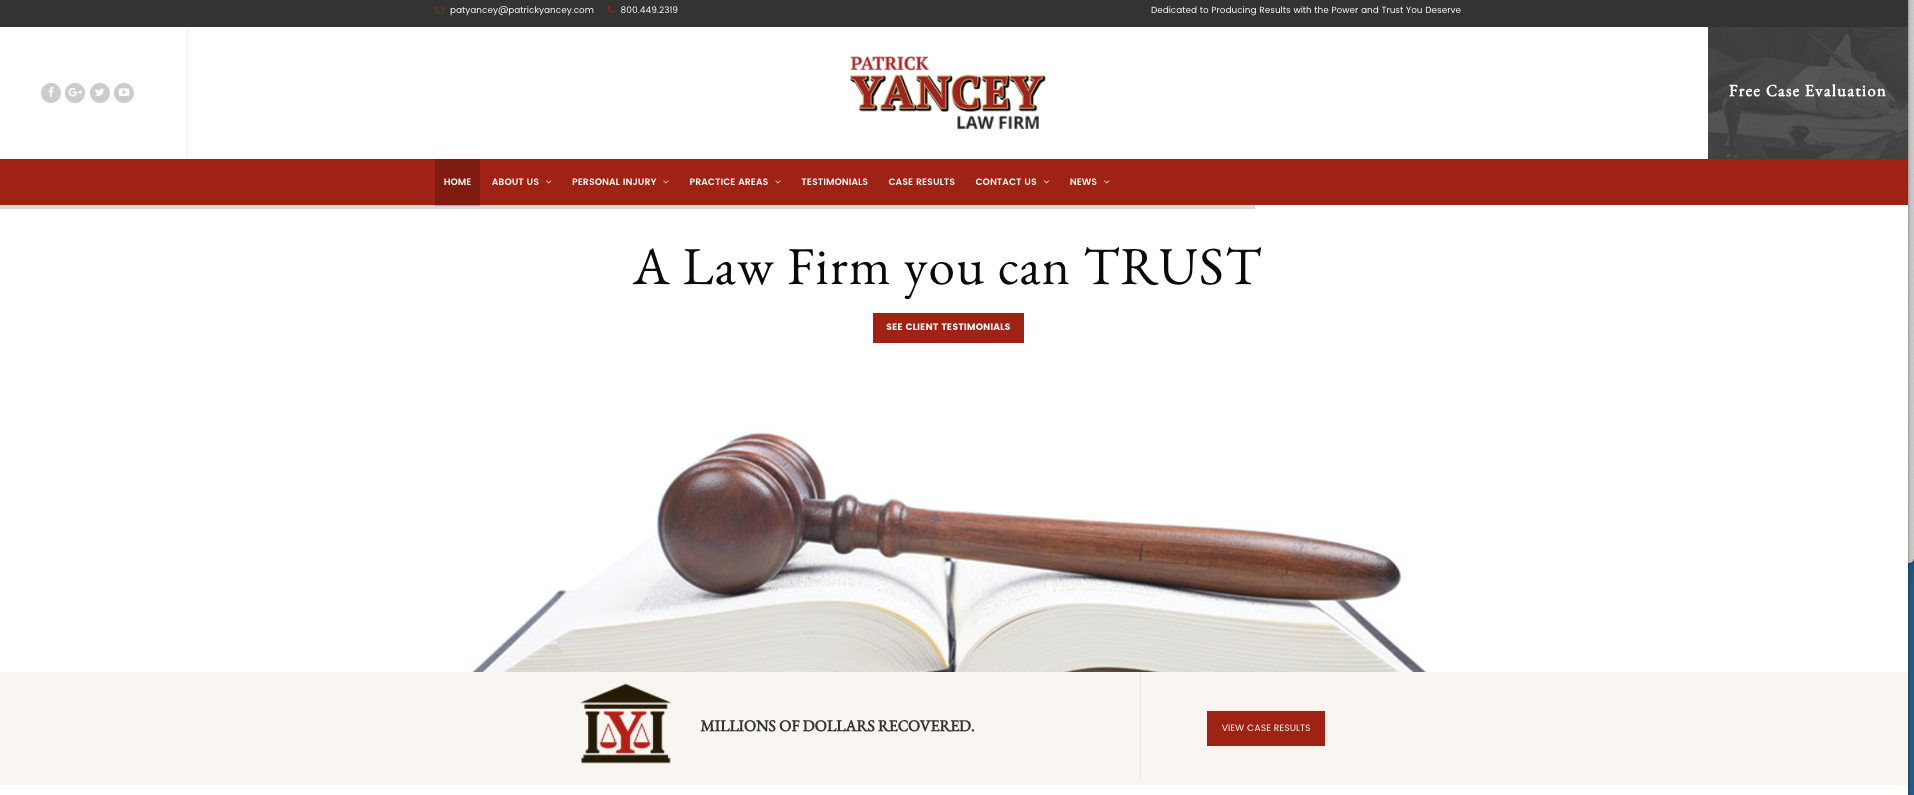 Patrick Yancey Law Firm